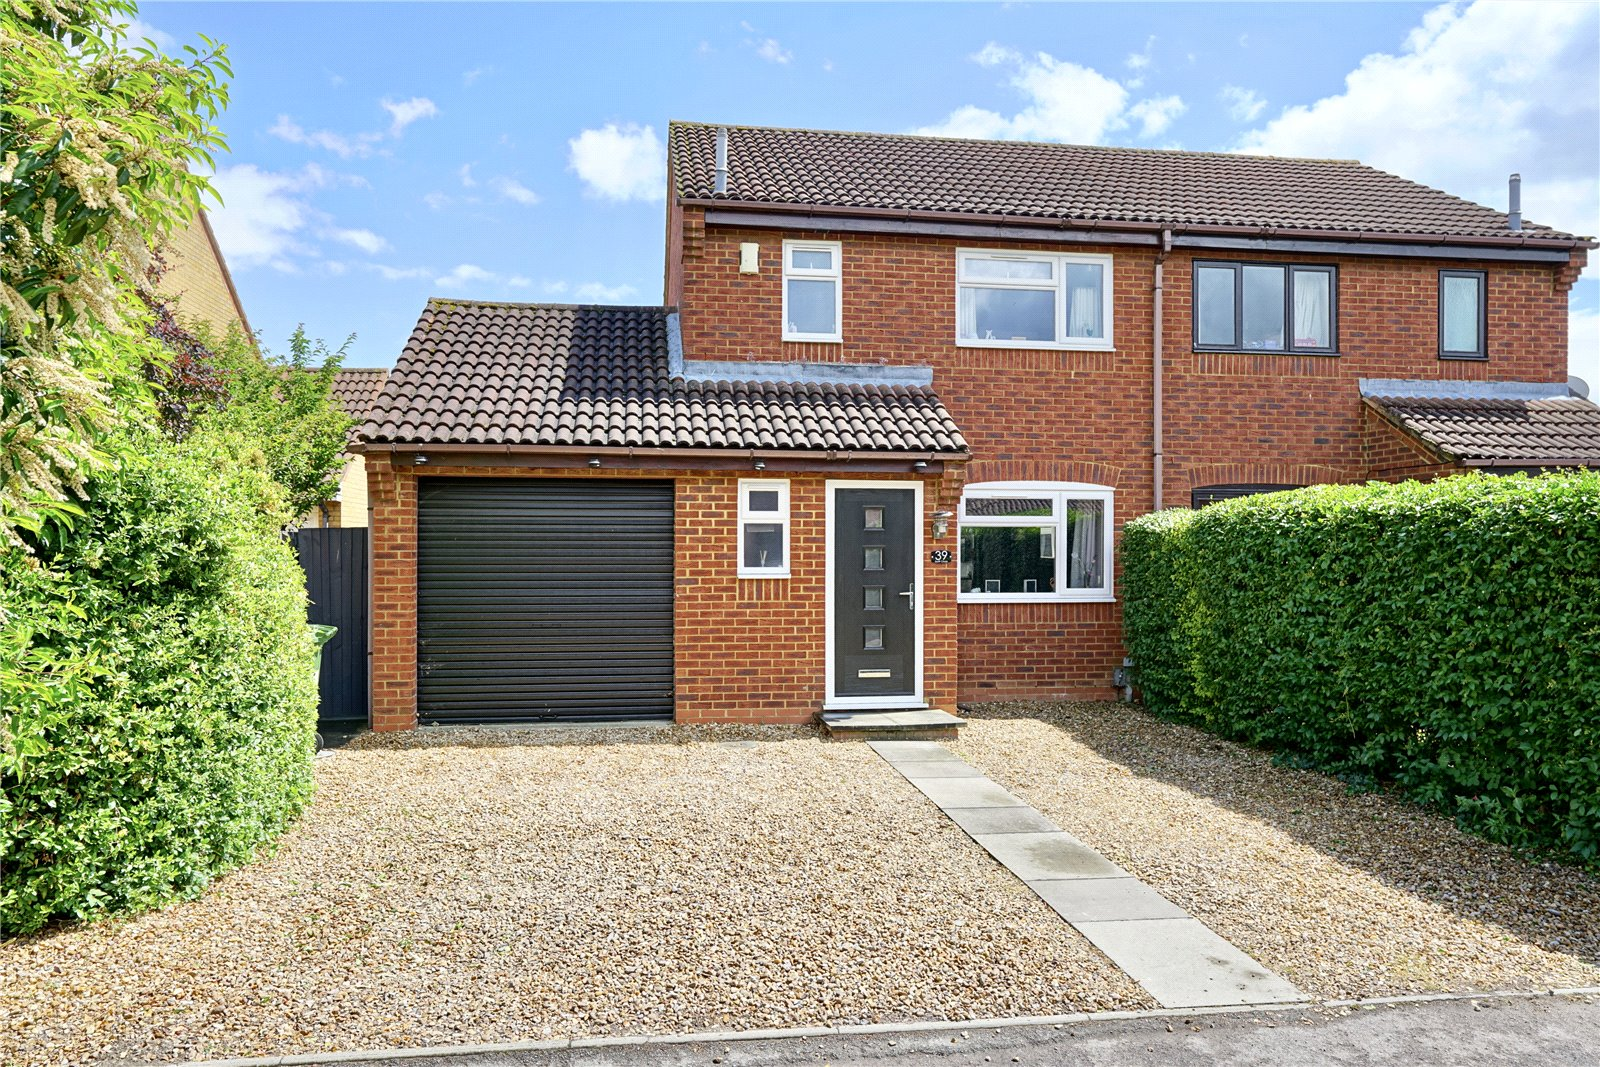 3 bed house for sale in Swift Close, St. Neots 0